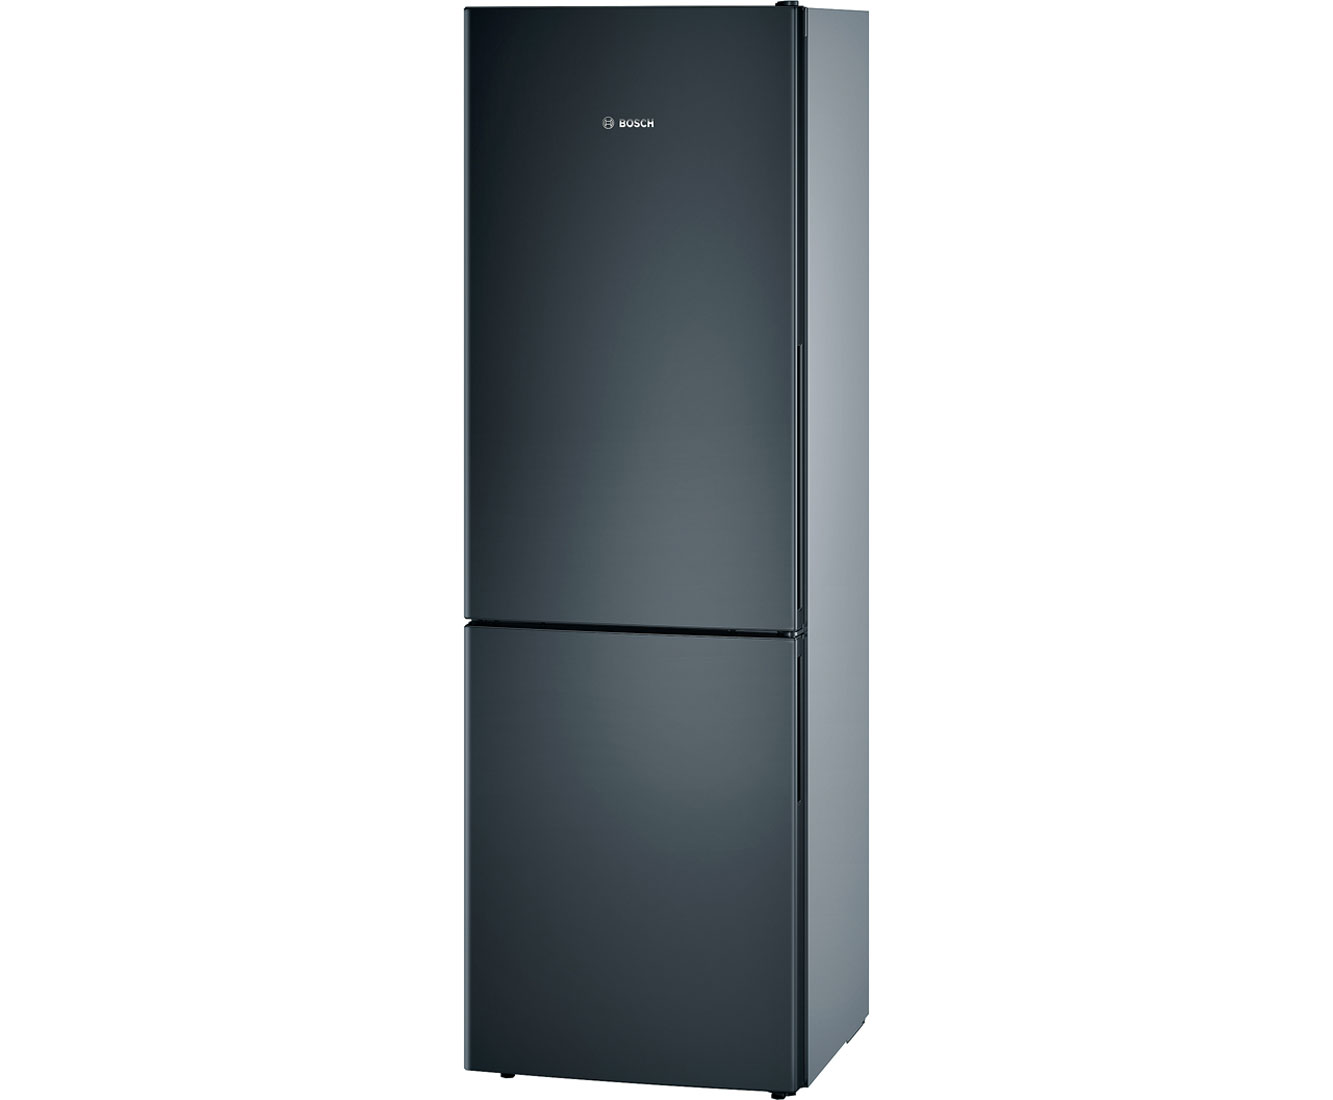 siemens kg39eai40 iq500 k hl gefrier kombination a 337 l edelstahl inox. Black Bedroom Furniture Sets. Home Design Ideas